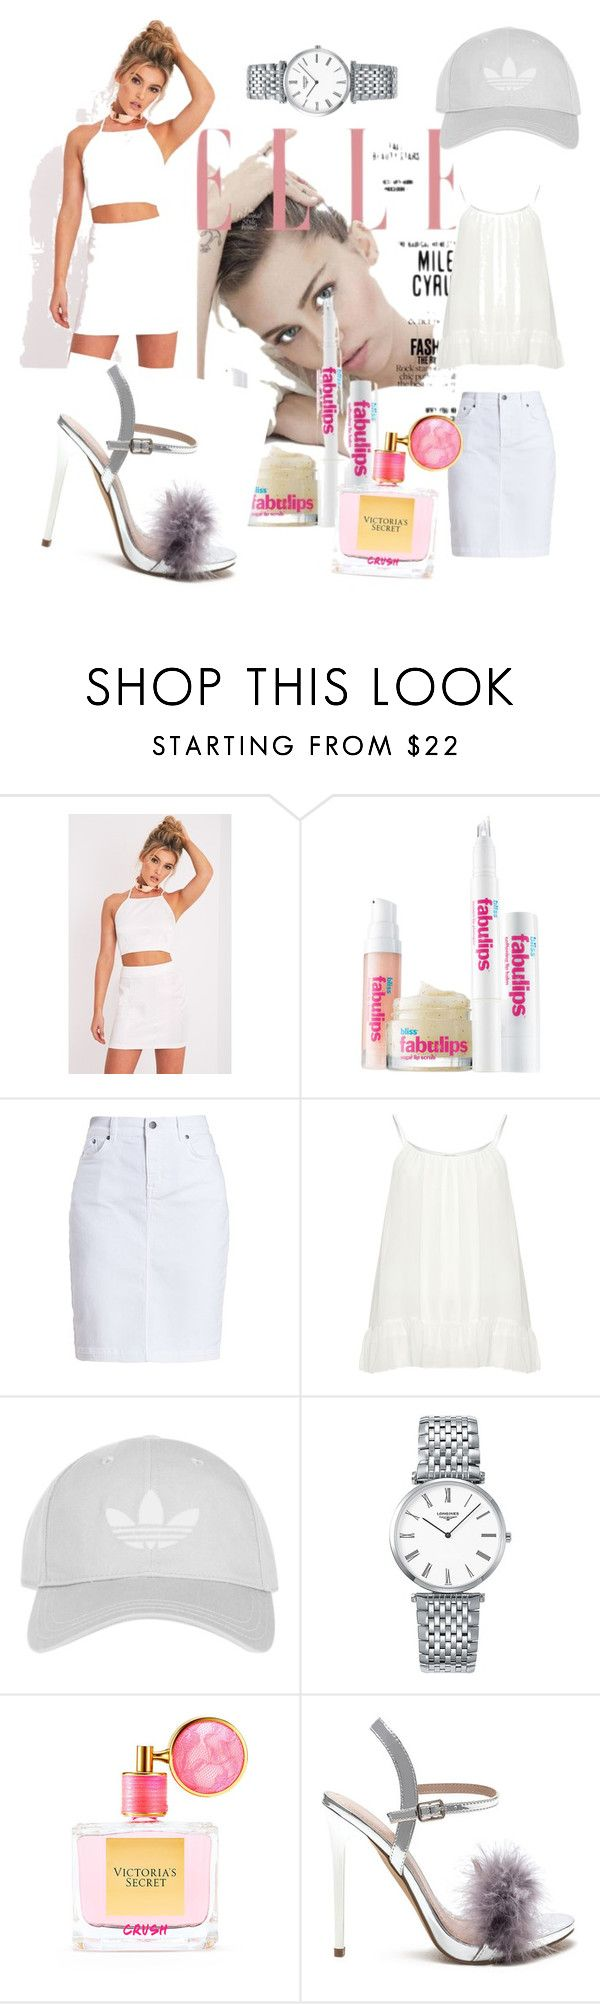 """""""Untitled #4"""" by arrow10 ❤ liked on Polyvore featuring Bliss, Barbour, Zizzi, Topshop, Longines and Victoria's Secret"""